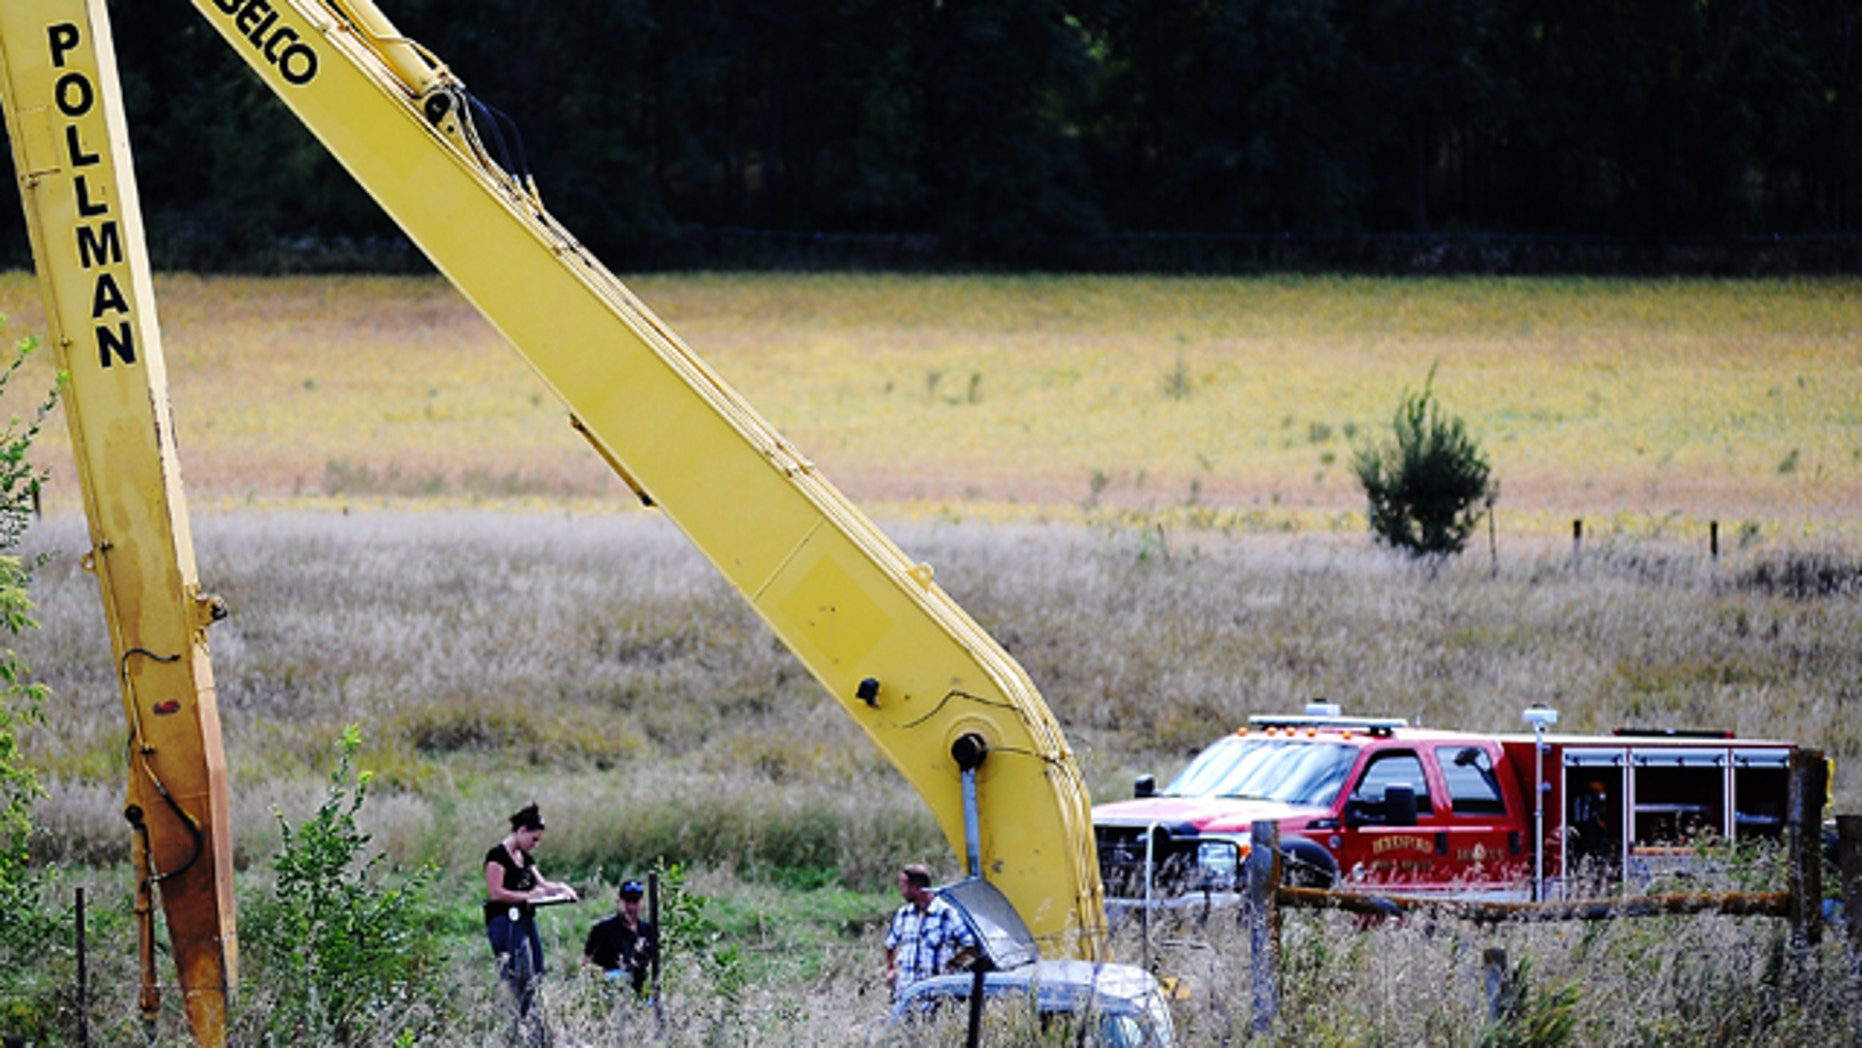 Sept. 23, 2013: Crews work to excavate a vehicle from an embankment near Beresford, S.D.